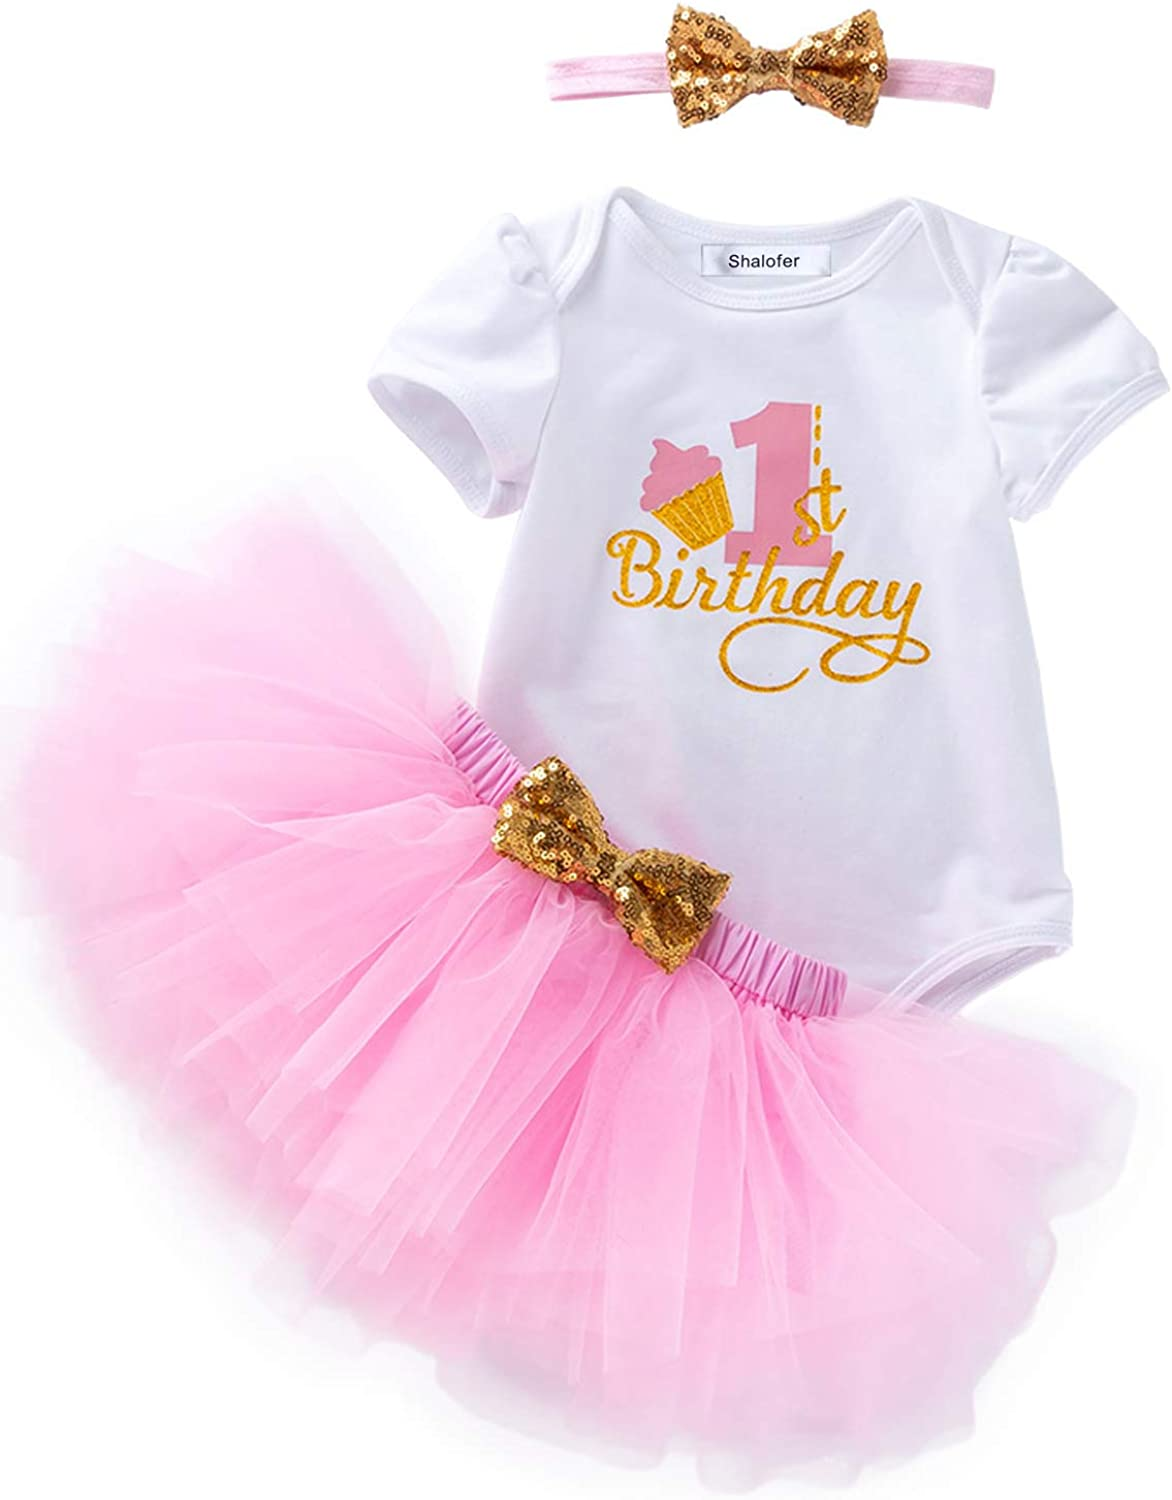 8Pcs Outfit Set Baby Girls One Year Old Birthday Lace Tutu Bodysuit Skirt  with Headband